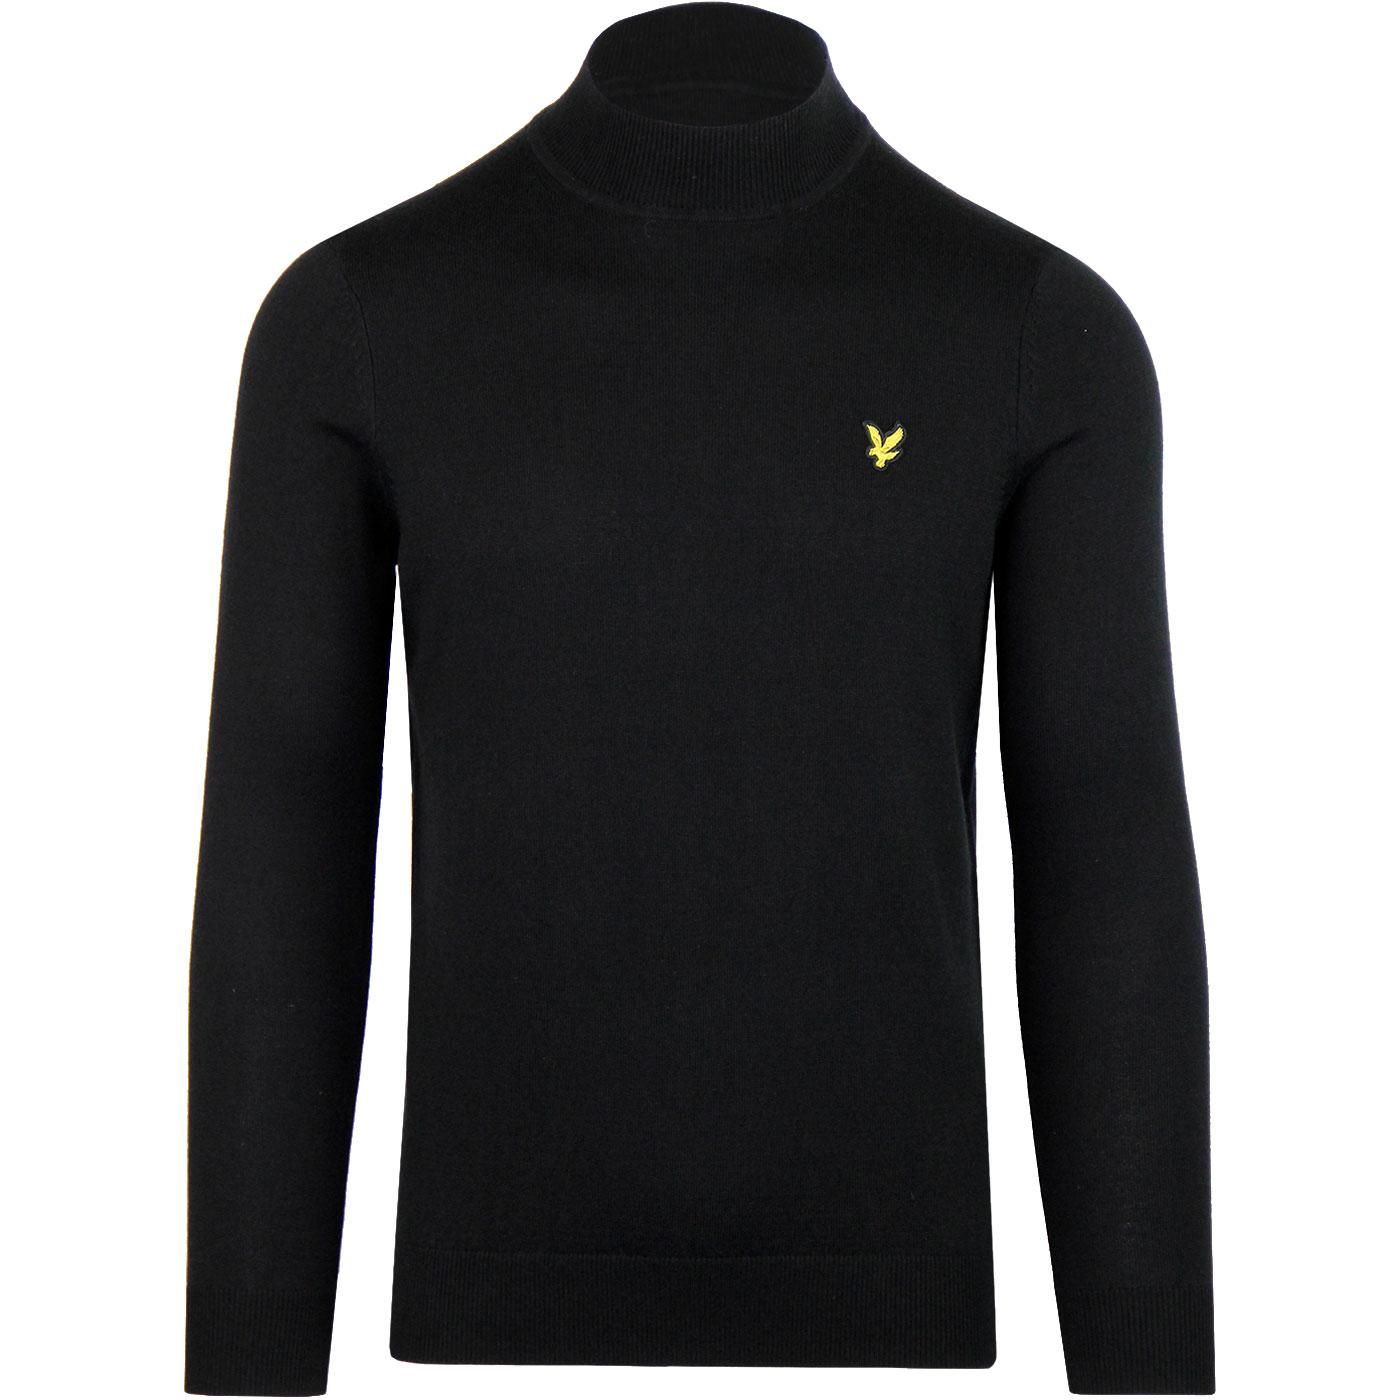 LYLE & SCOTT Men's Retro Knit Turtle Neck Jumper